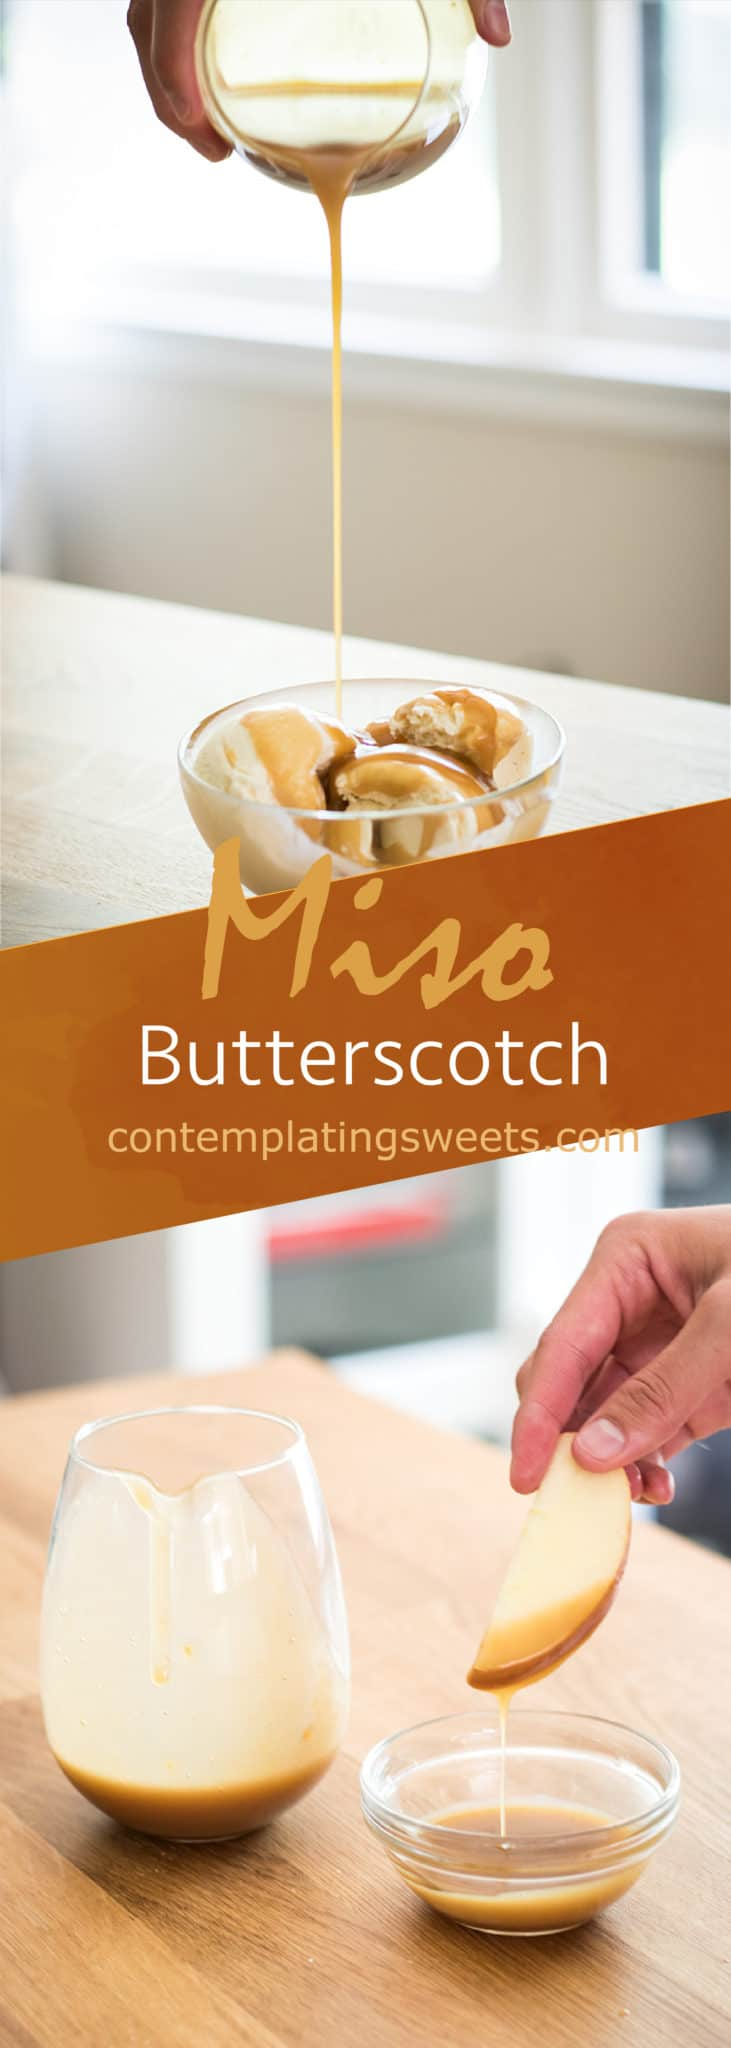 Miso butterscotch: Sweet and salty butterscotch gets a hit of umami from miso! This miso butterscotch will be your new favorite fusion dessert.